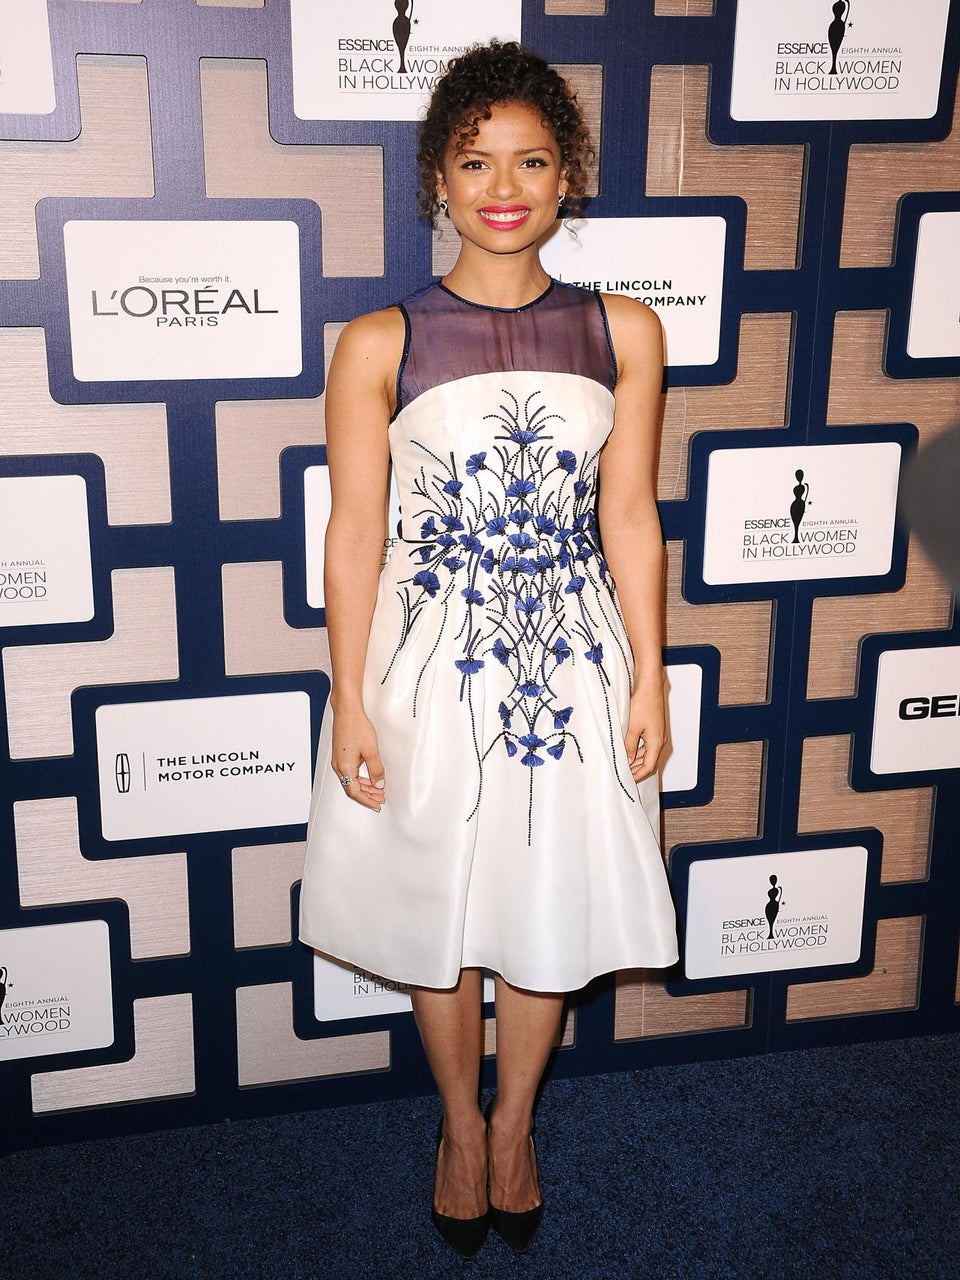 Gugu Mbatha-Raw Recalls a Near Death Experience and Explains How it Gave Her the Courage to Live Life